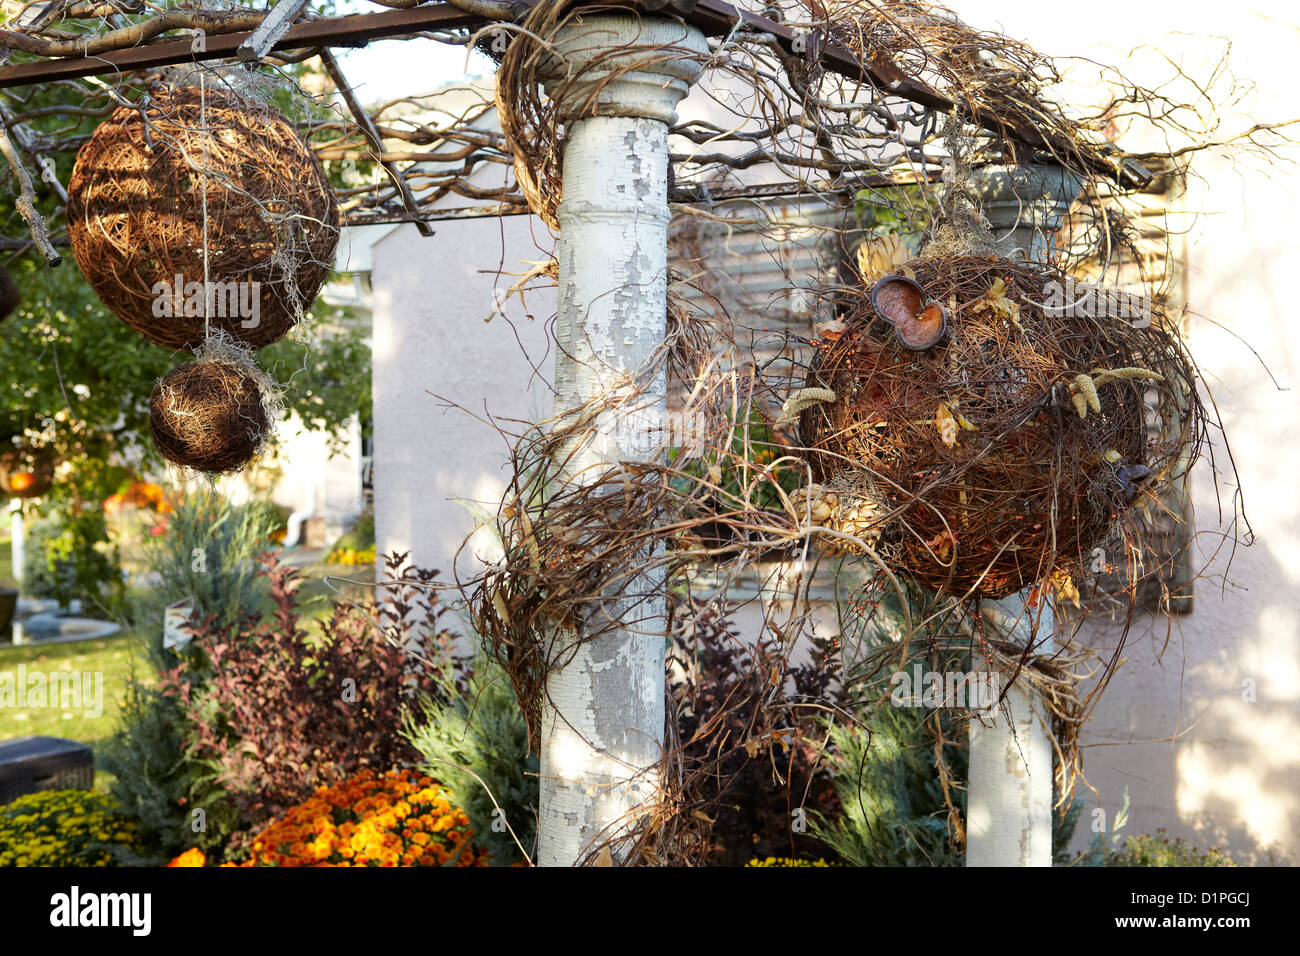 garten spalier mit herbst dekoration stockfoto bild 52741602 alamy. Black Bedroom Furniture Sets. Home Design Ideas